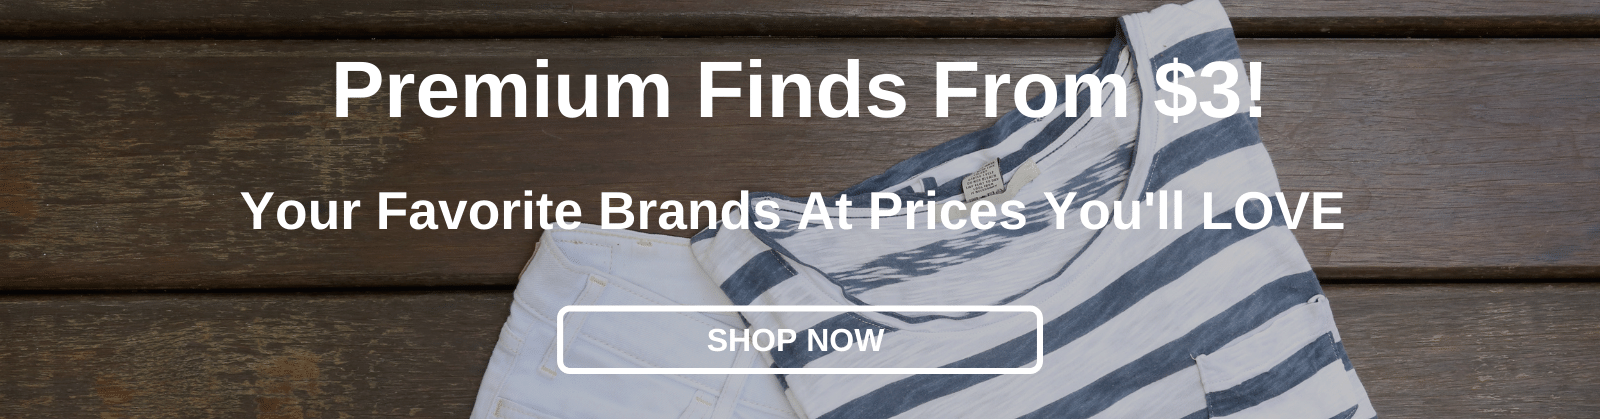 Premium Finds From $3! Your Favorite Brands At Prices You'll LOVE [Shop Now]